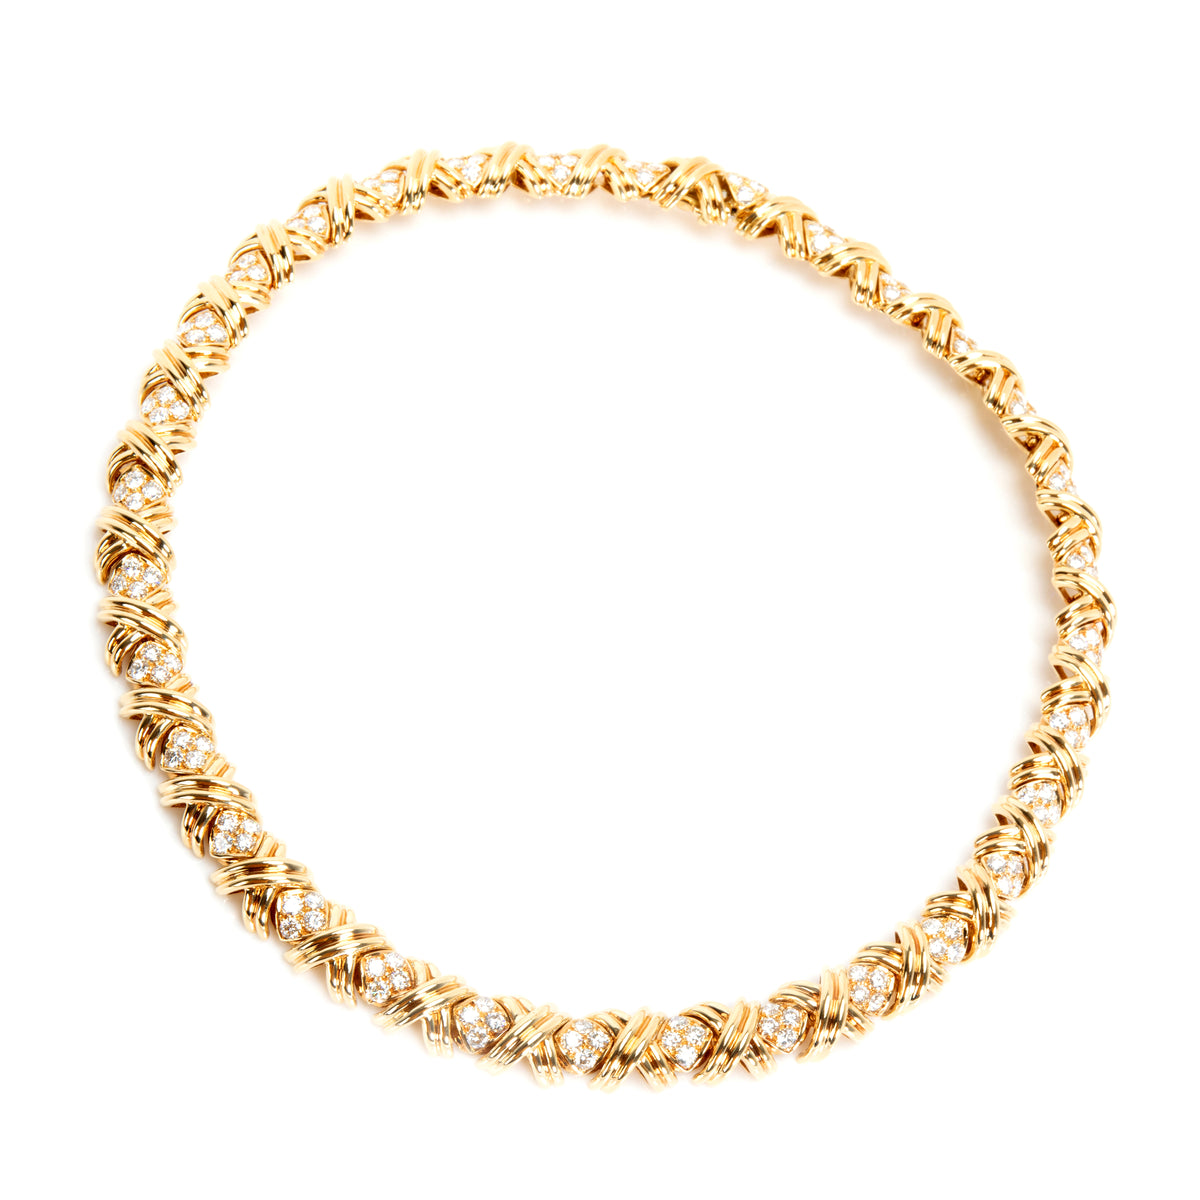 Tiffany & Co. X Collection Diamond Necklace in 18K Yellow Gold (8.28 CTW)